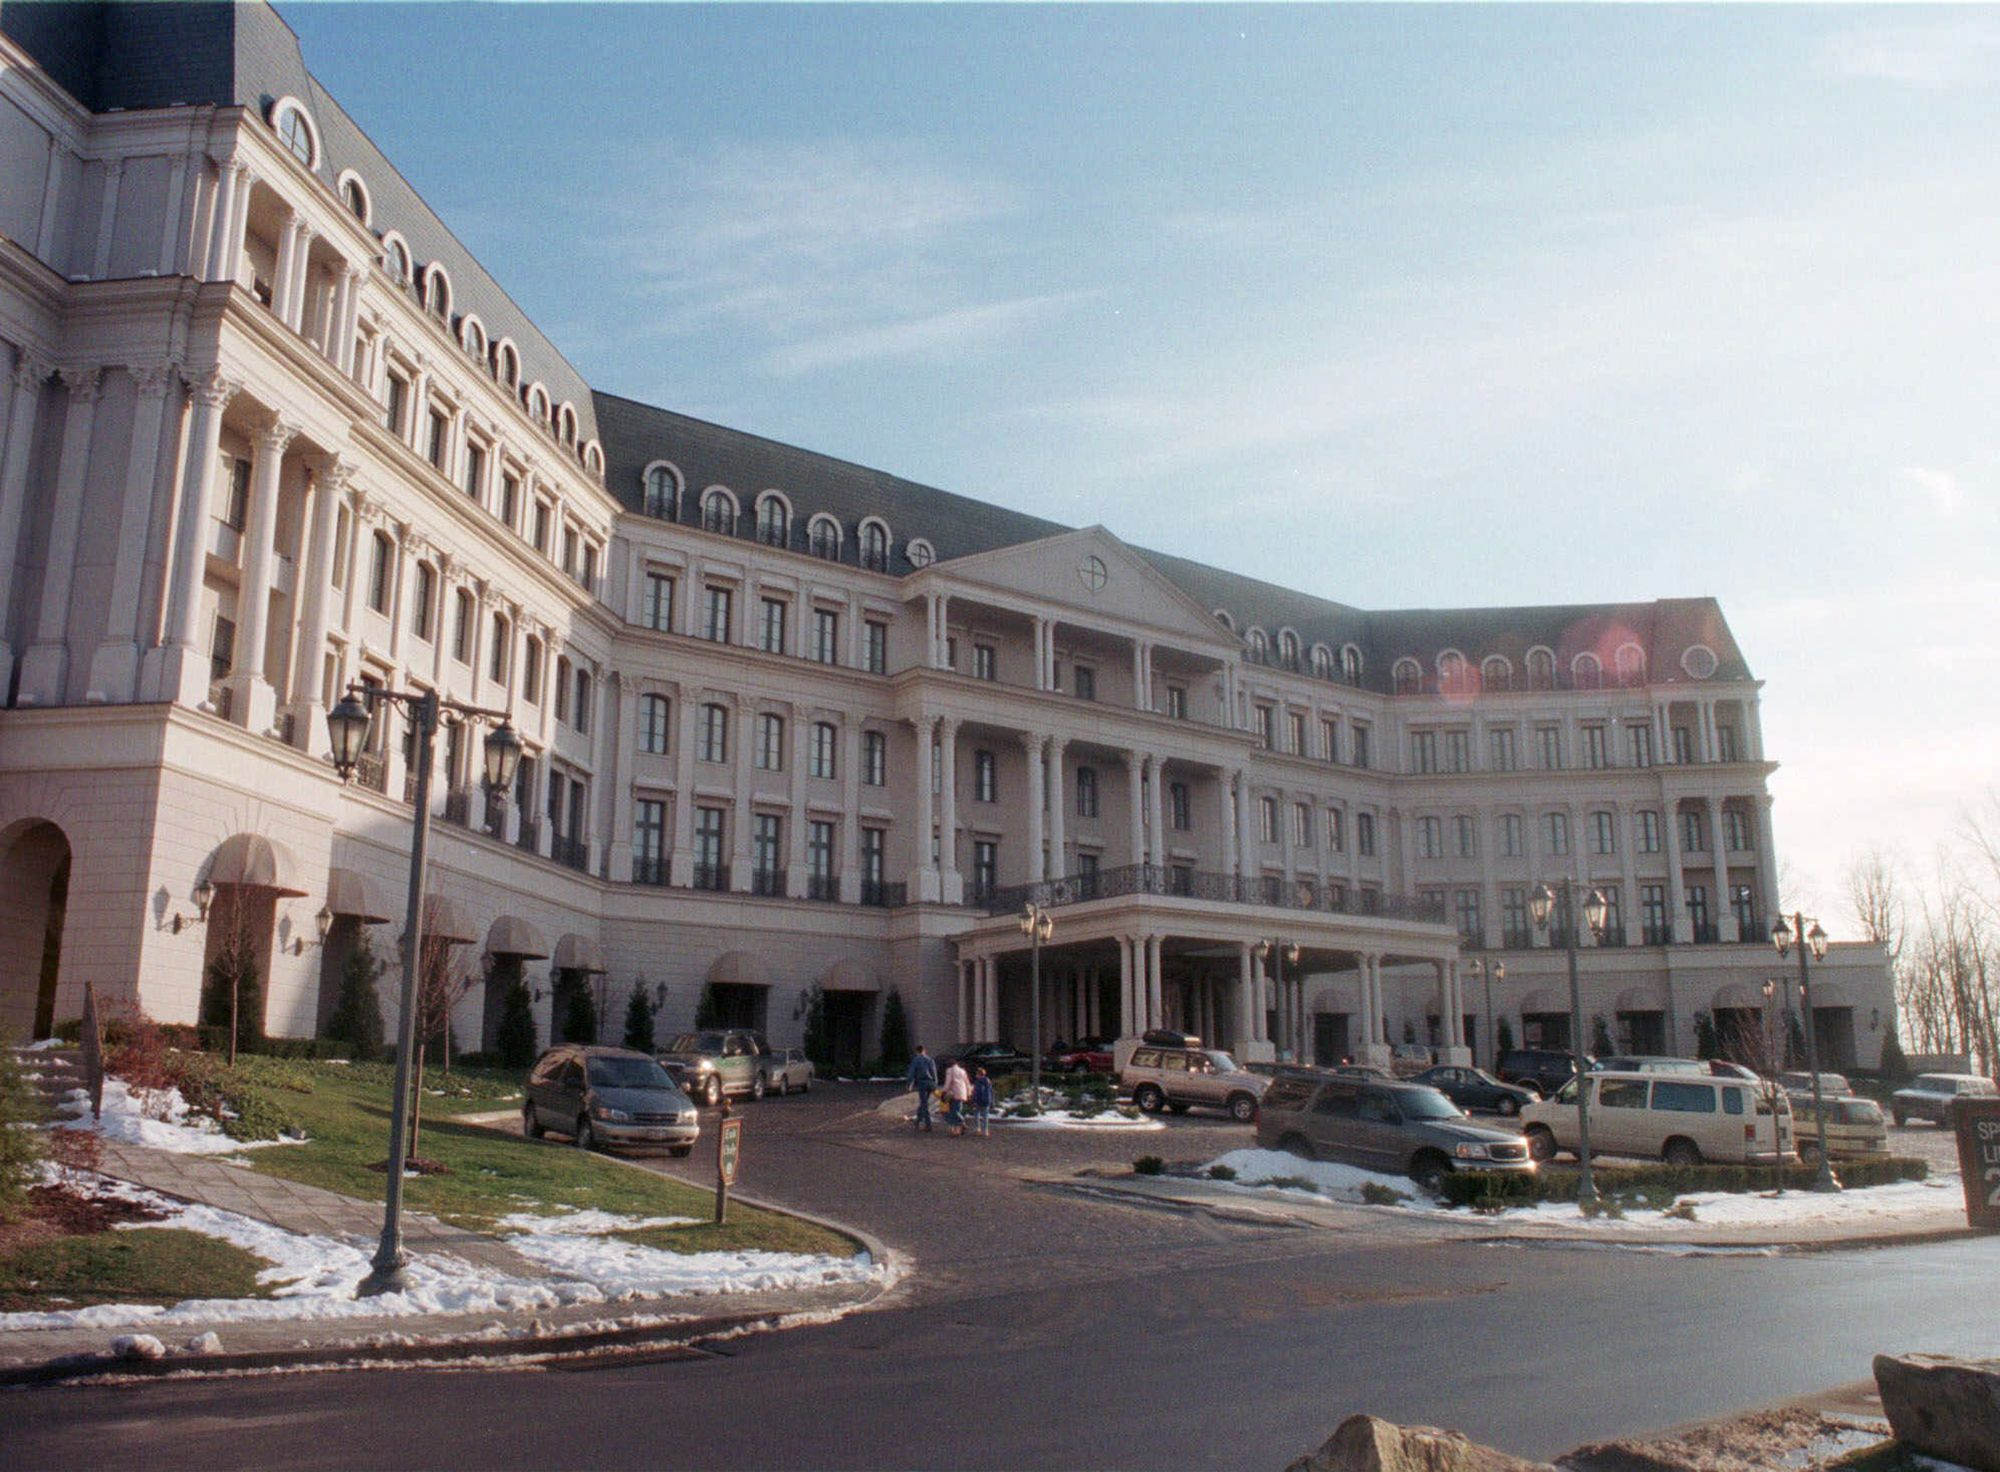 The Best Hotel in Every State....Nemacolin is so close to